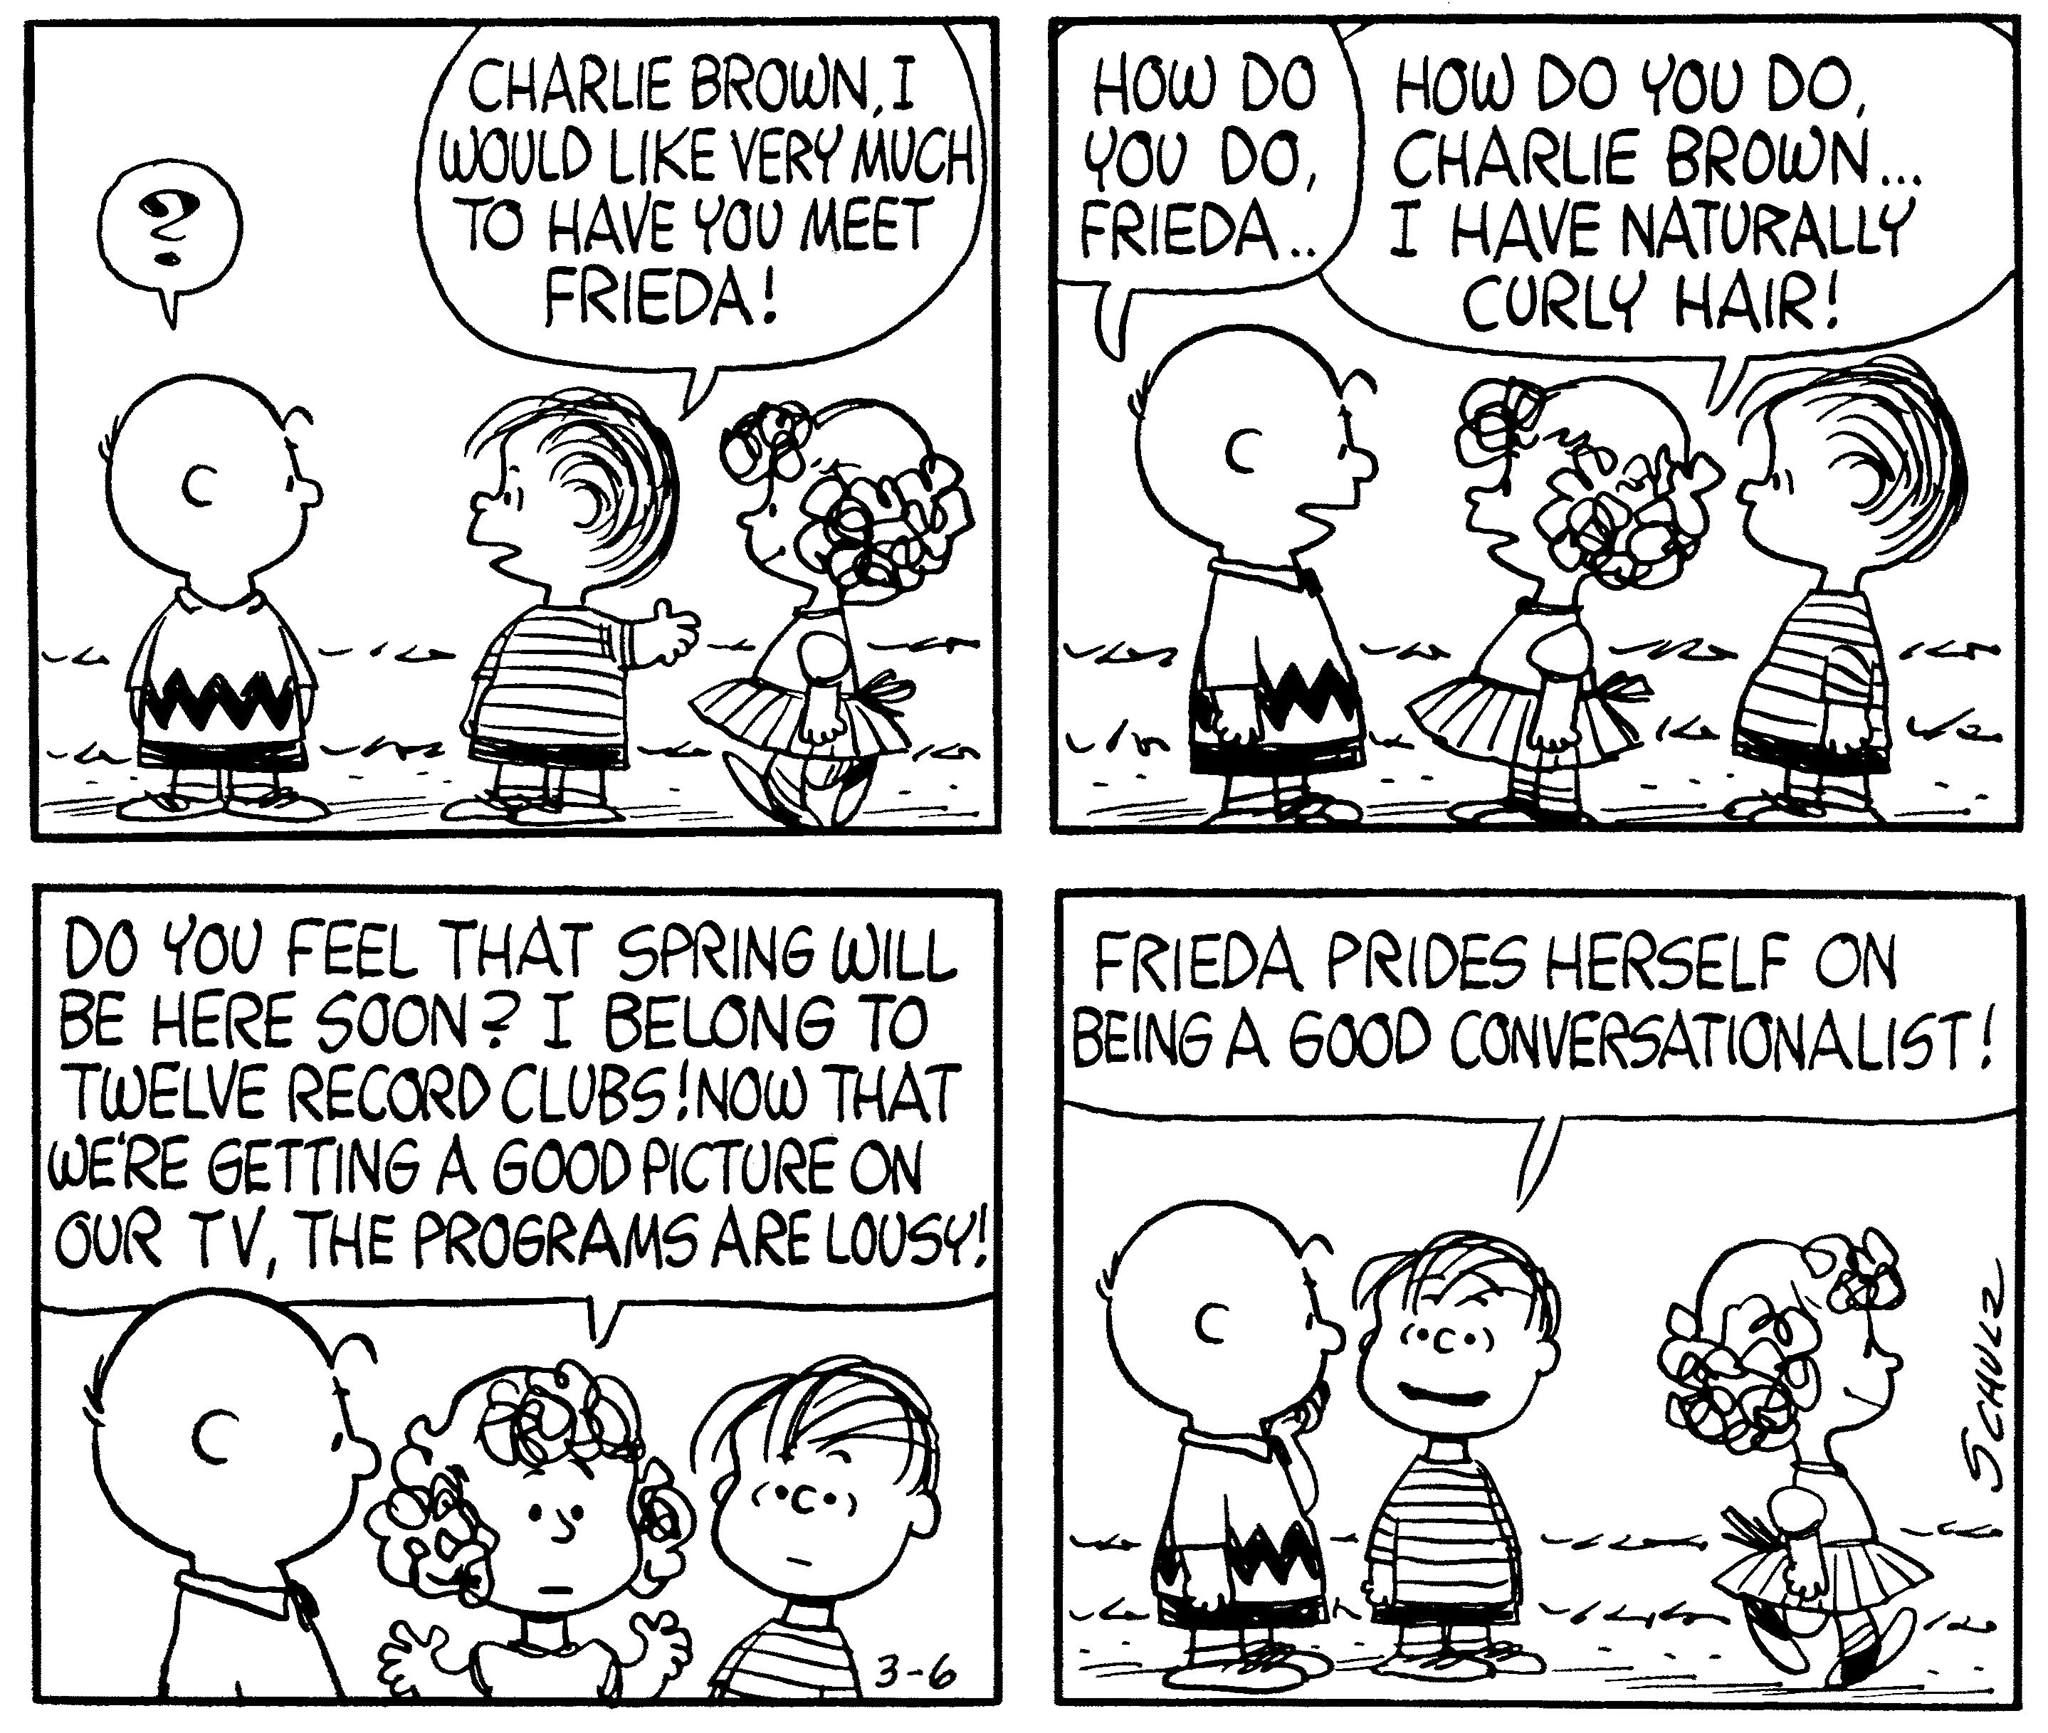 On March 6 1961 Schulz Introduced Frieda To The Peanuts Comic Strip A